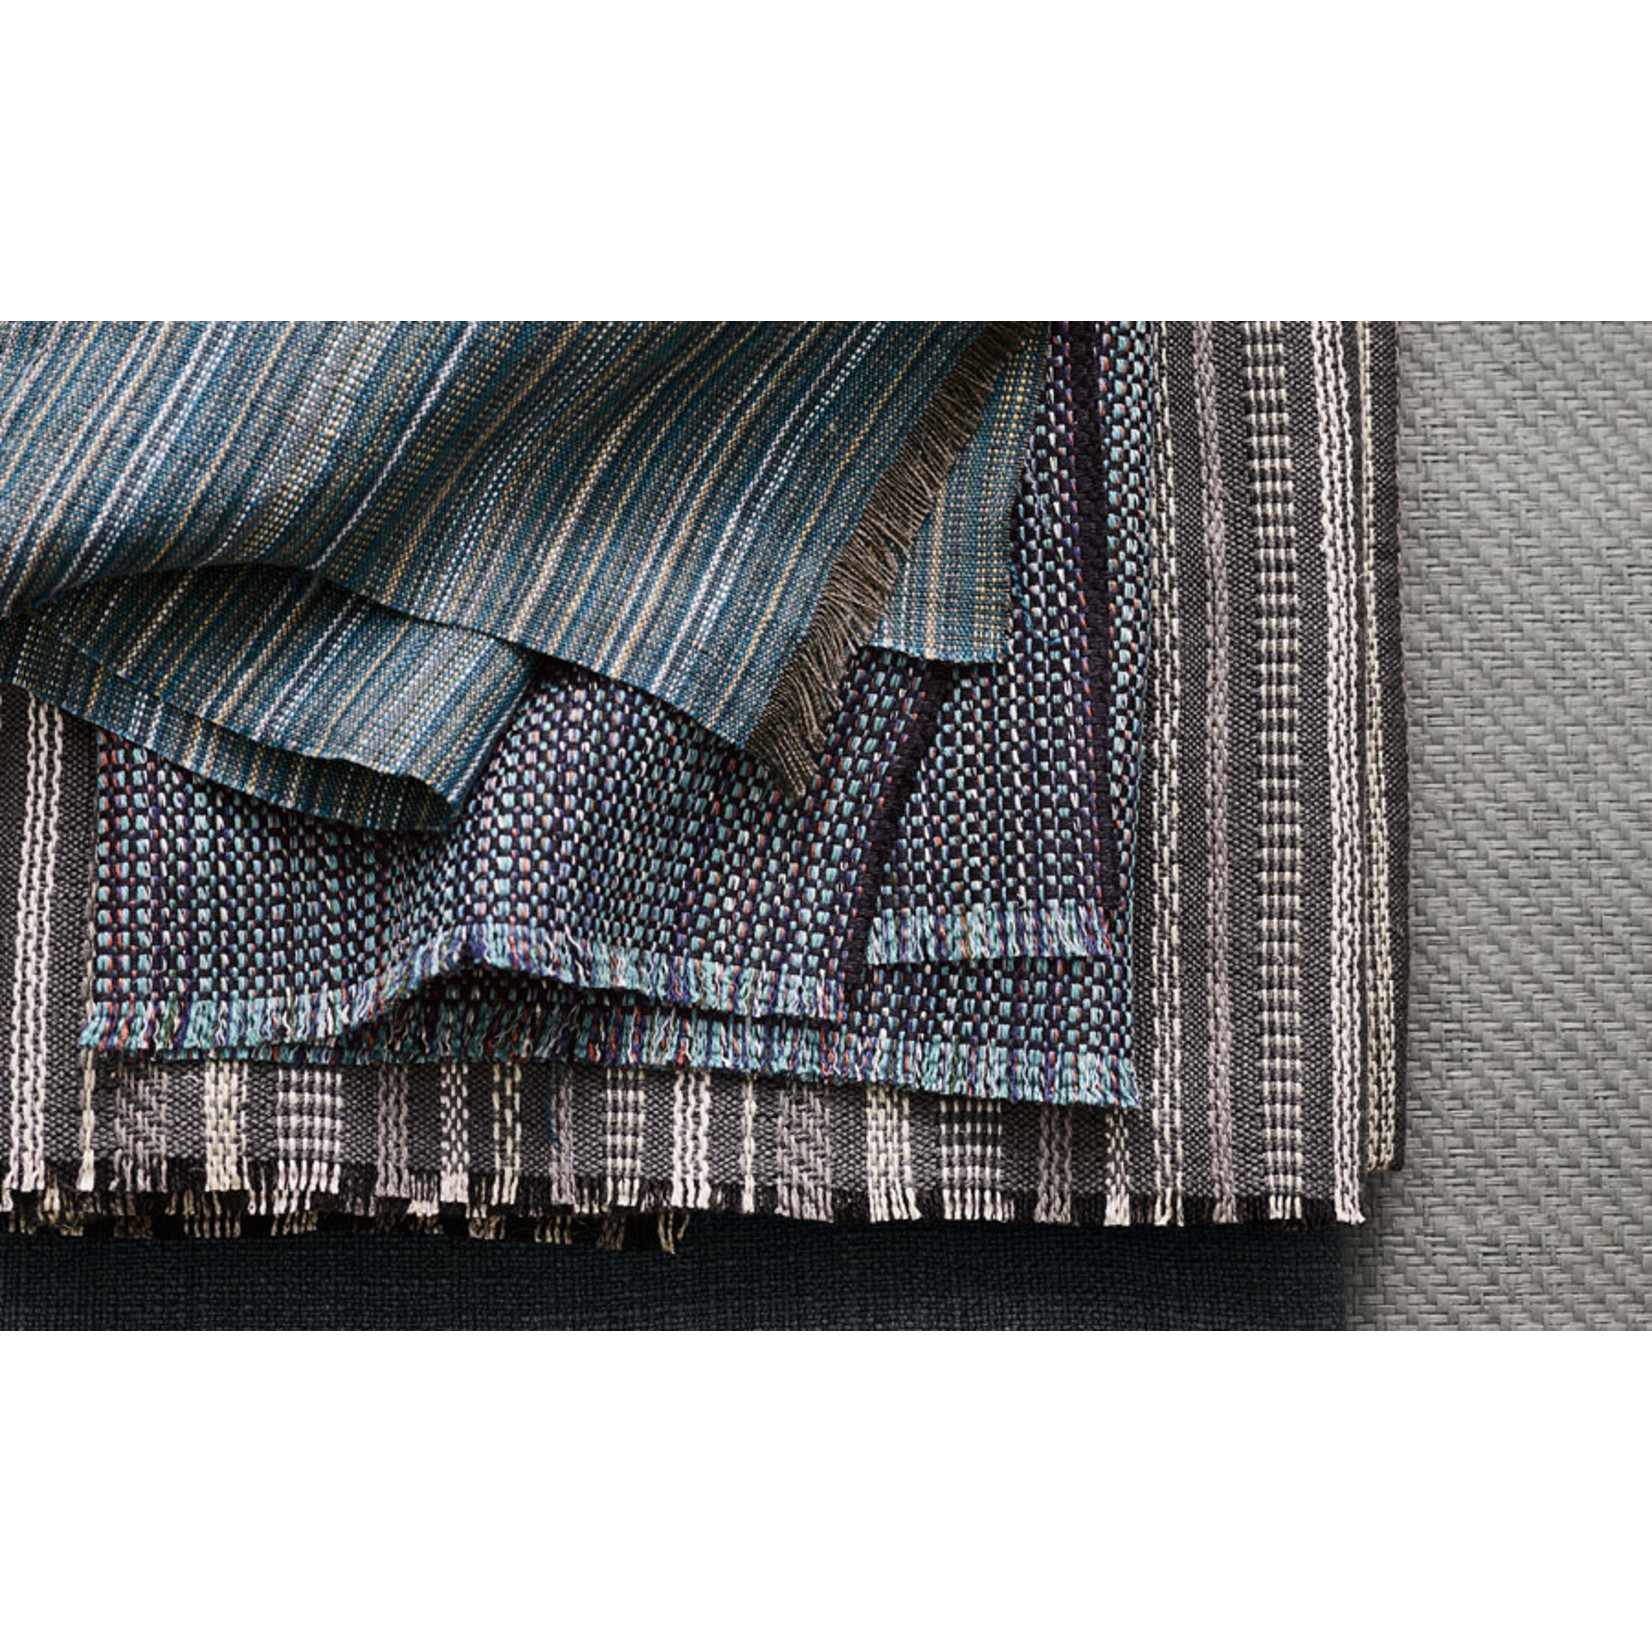 Mark Alexander Paperweave Handwoven Wallcoverings | Paper Putty